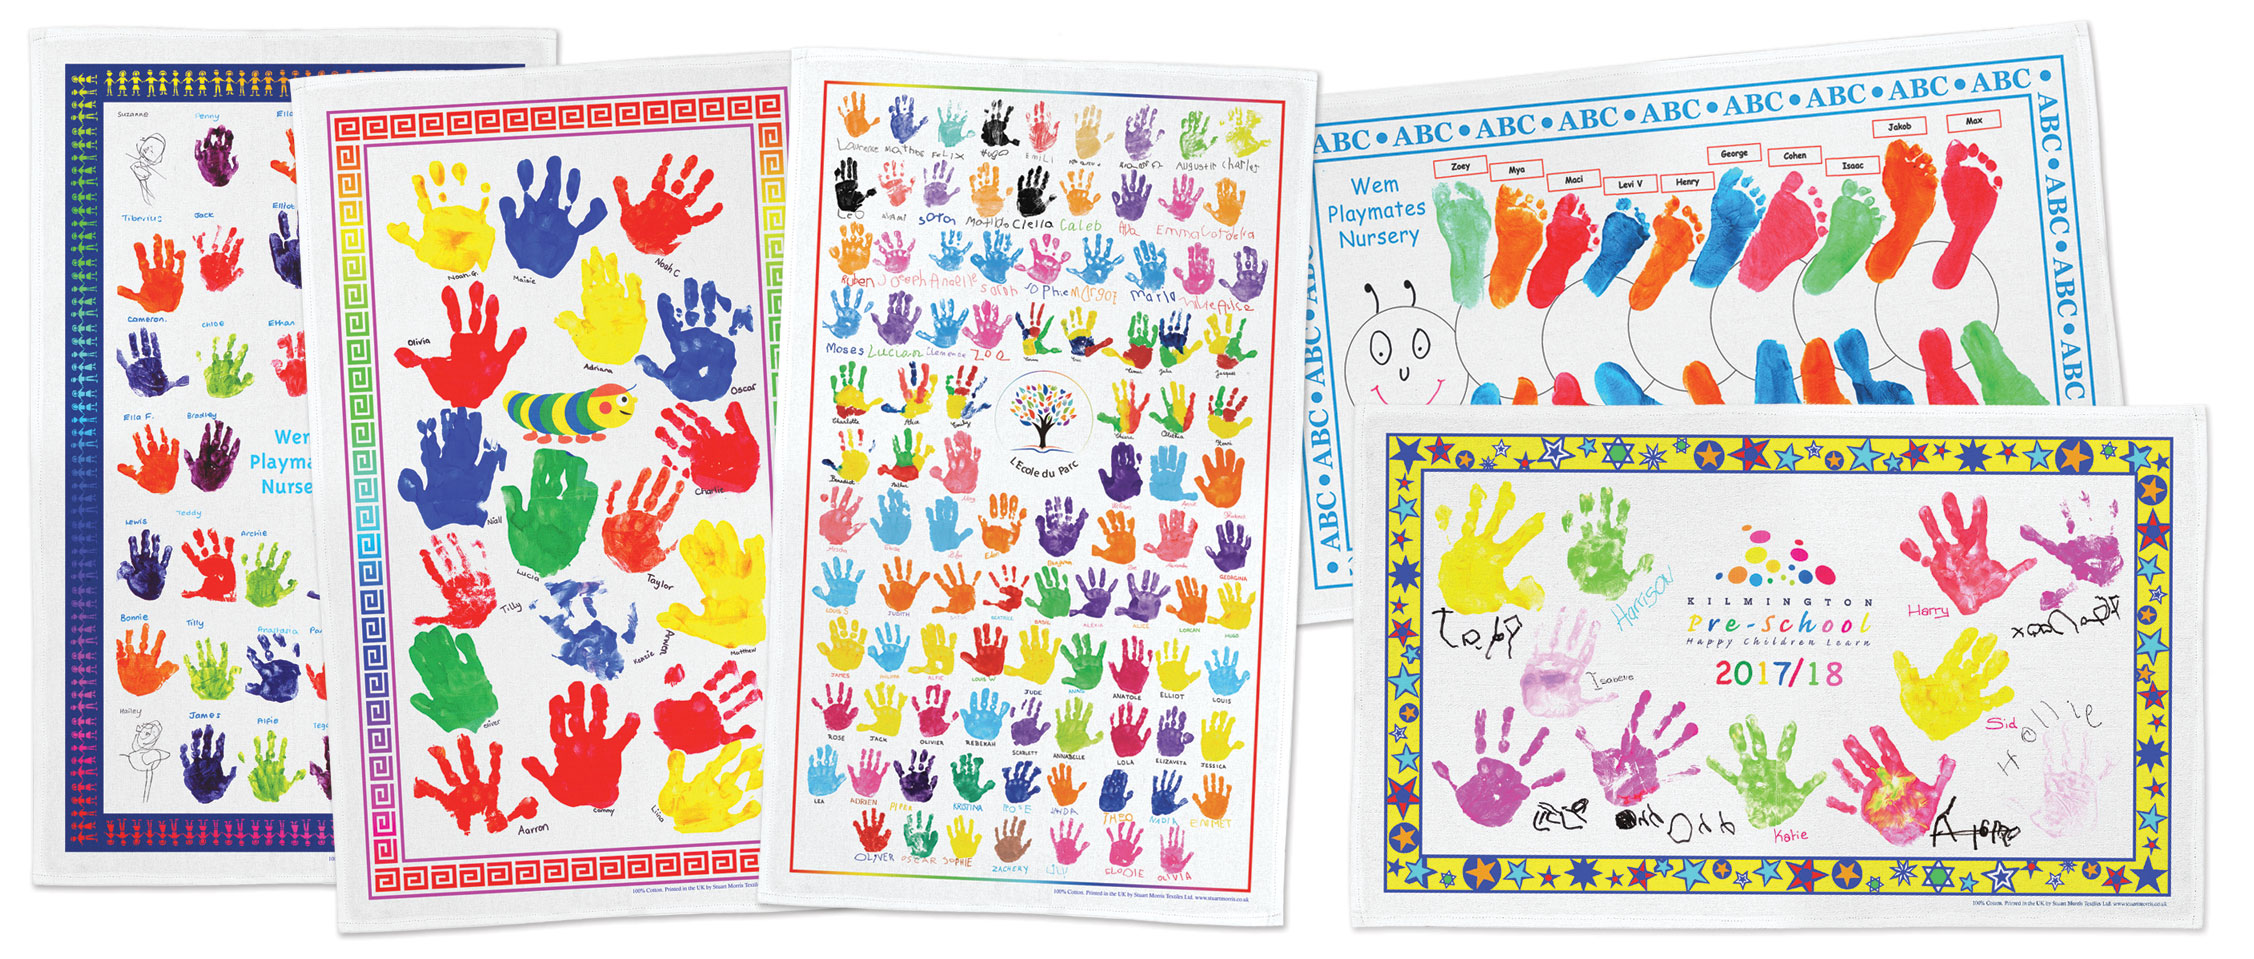 School Tea Towel hand and foot print designs